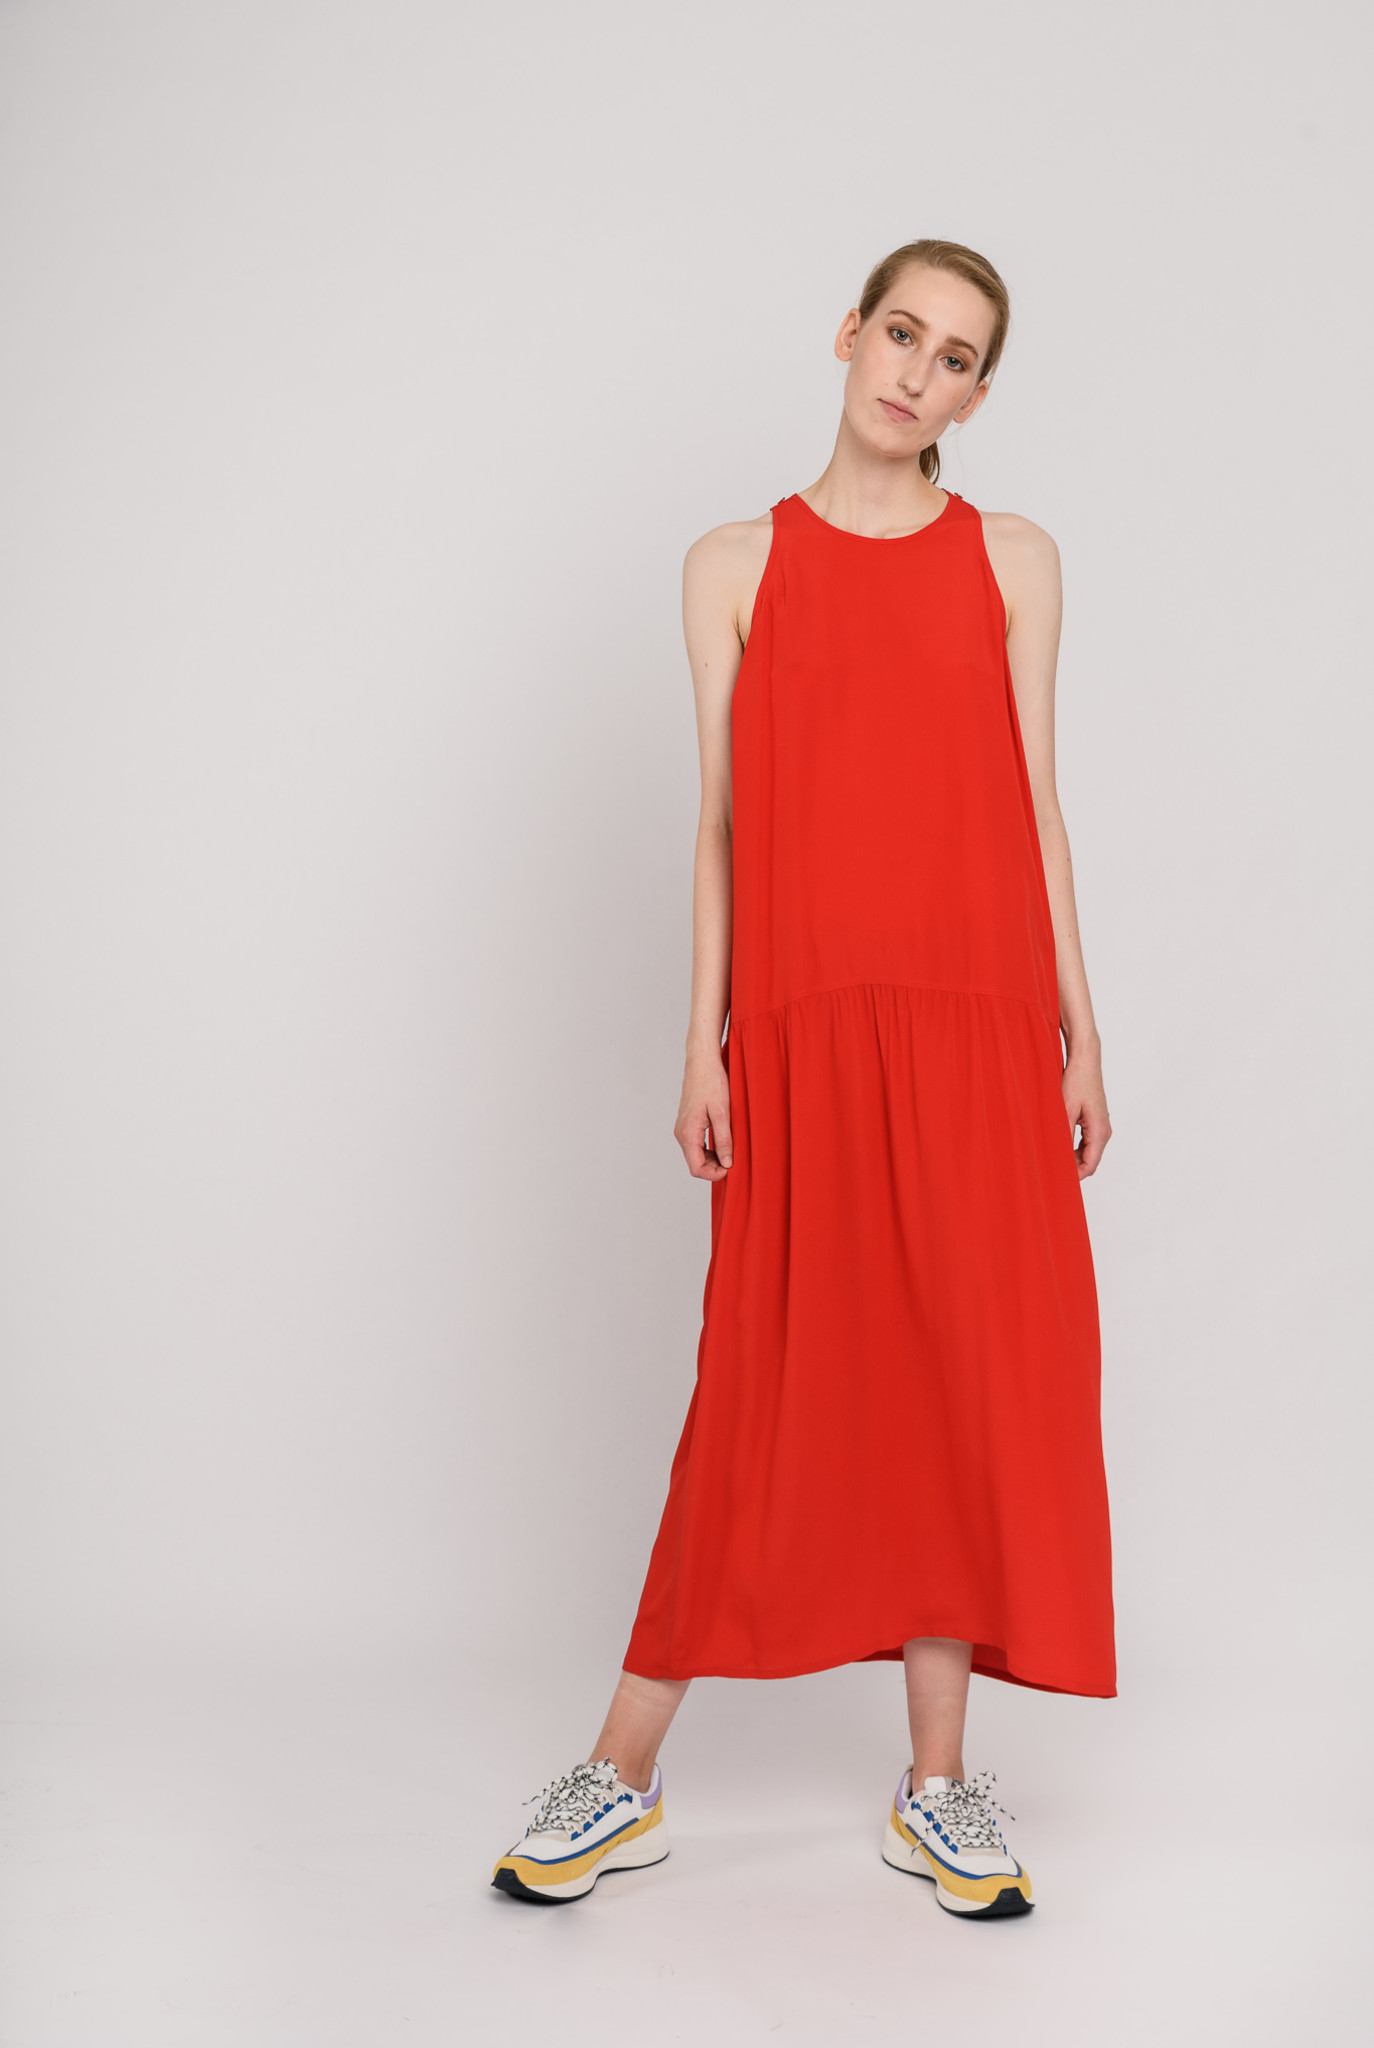 Daisy dress red silky